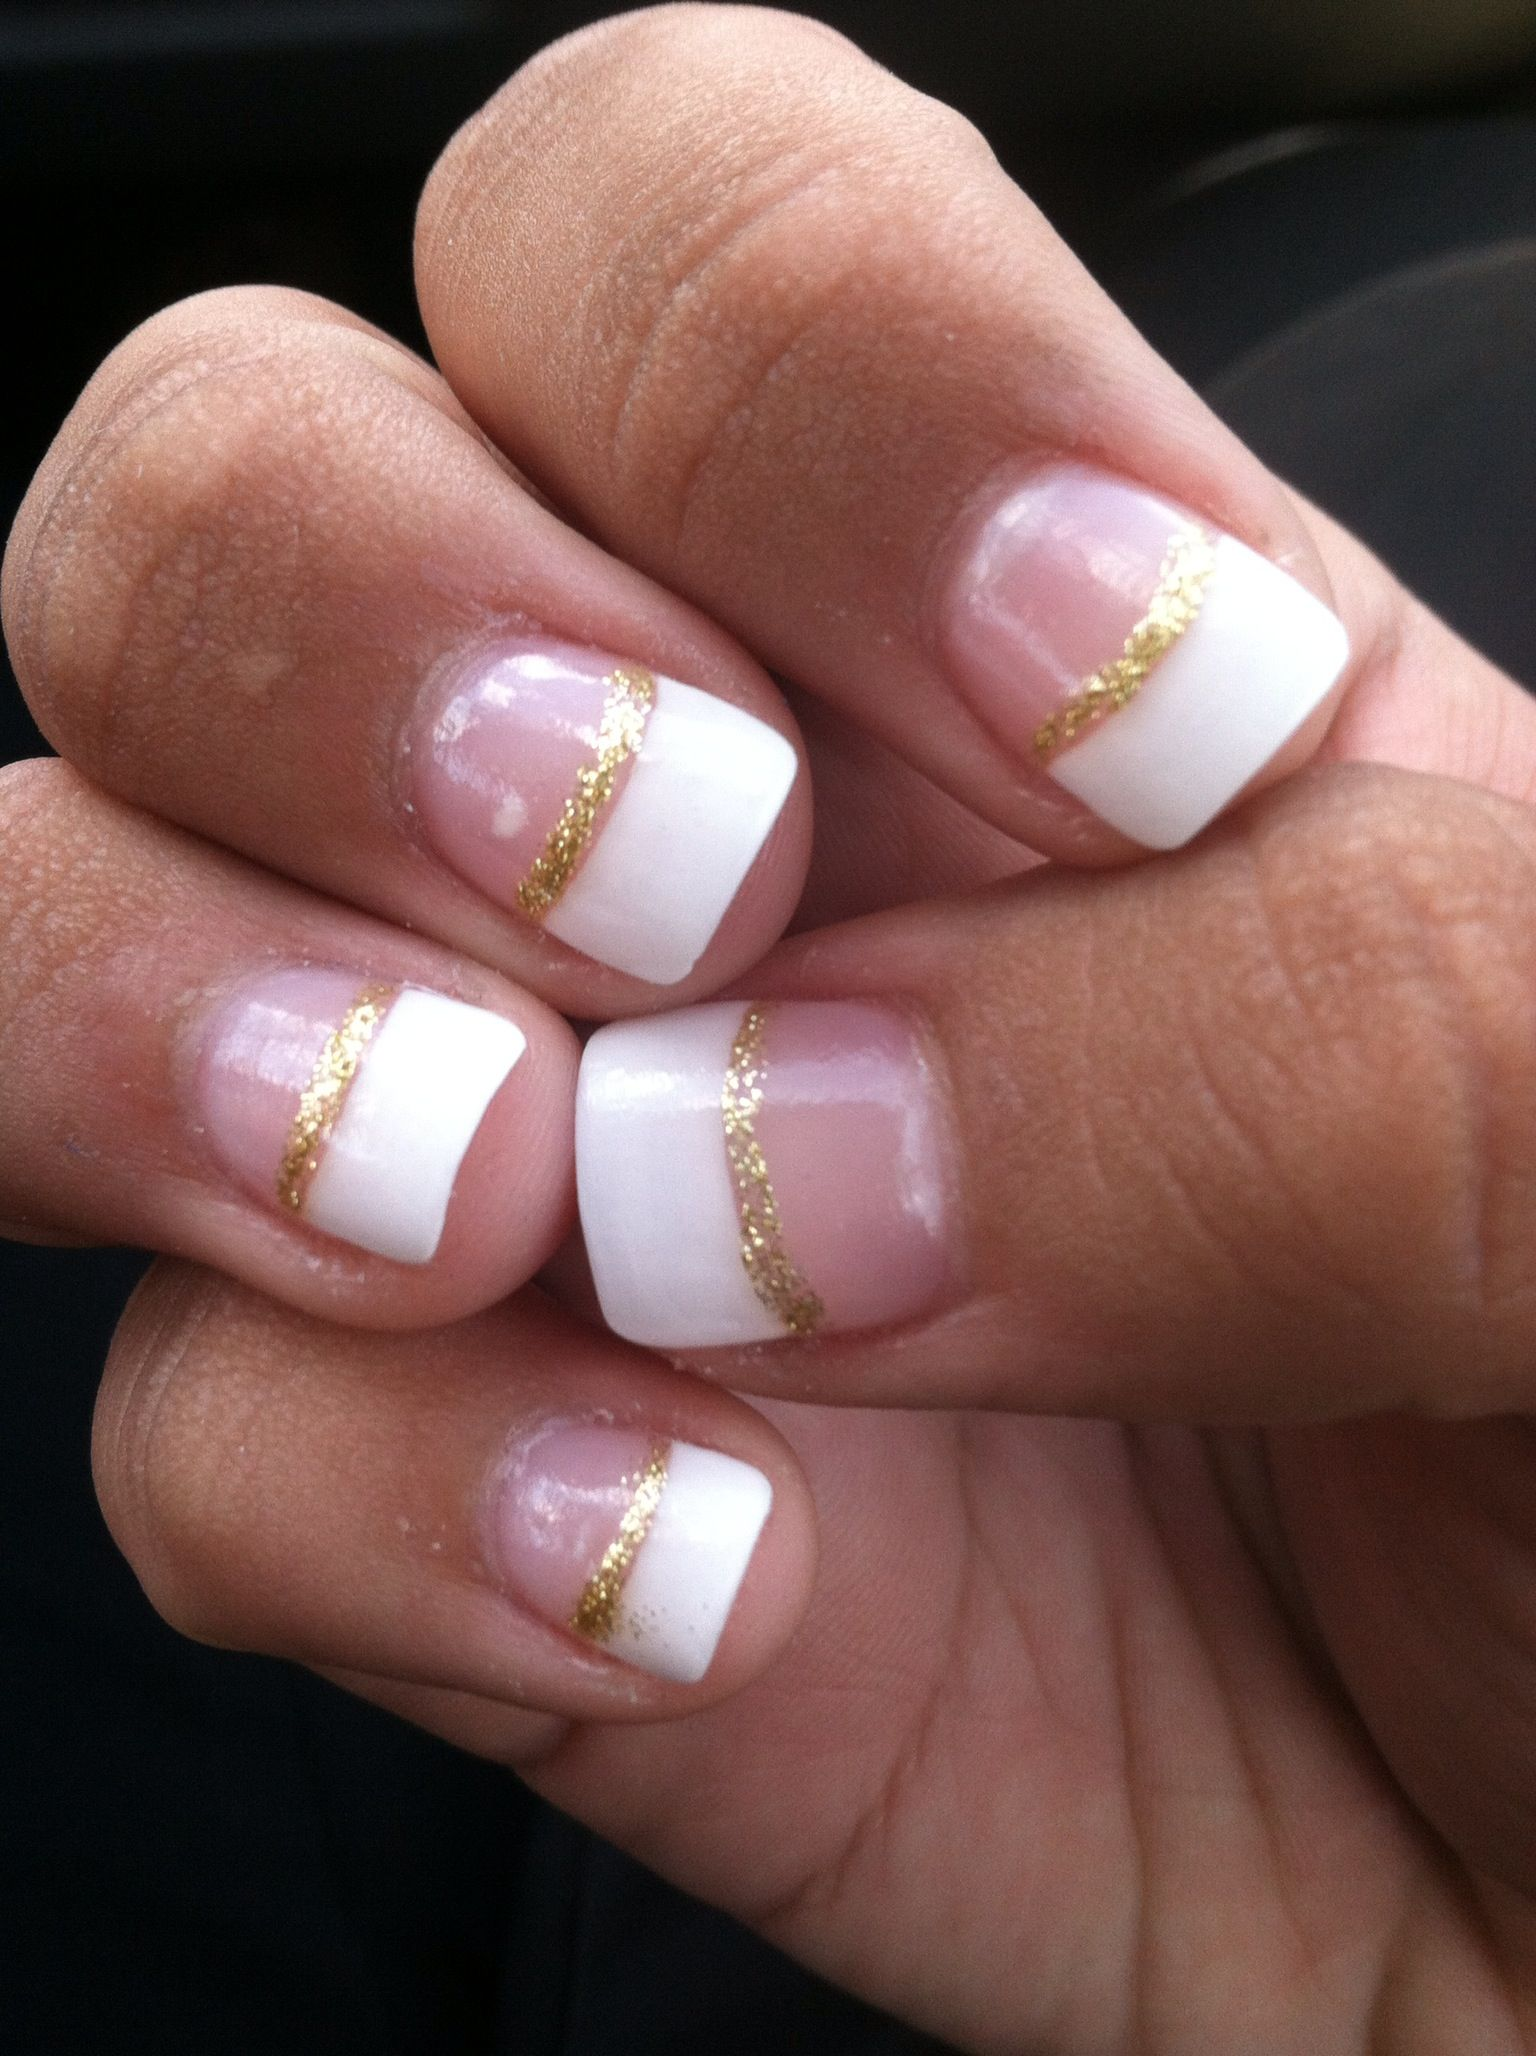 white french tip with gold glitter manicure nails